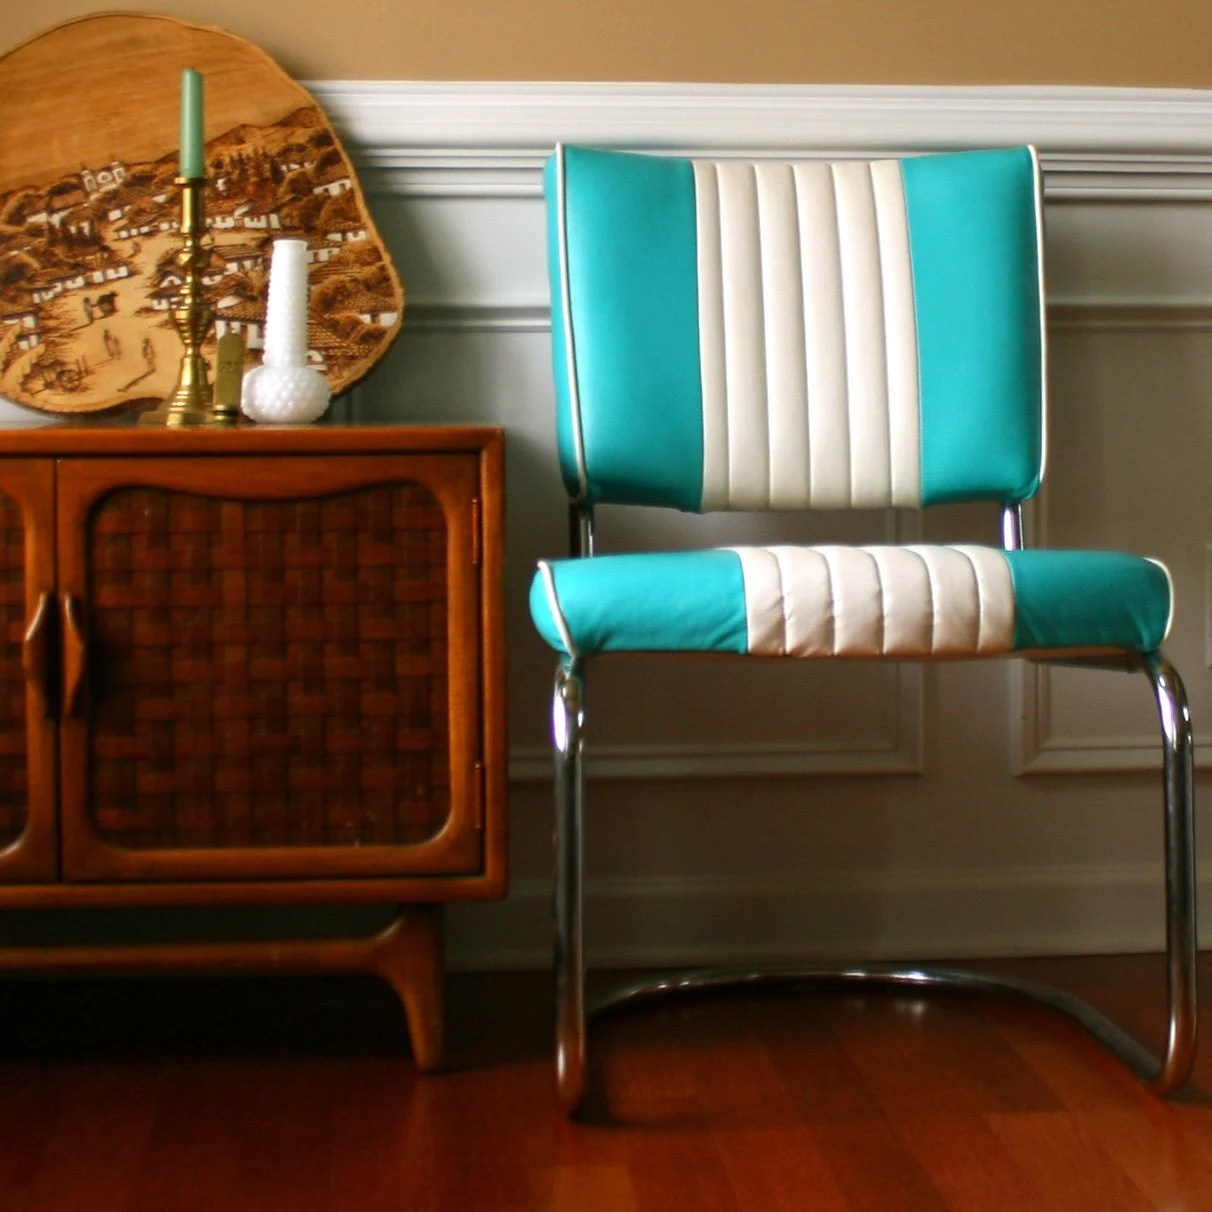 vintage turquoise chair retro diner turquoise kitchen chairs zoom